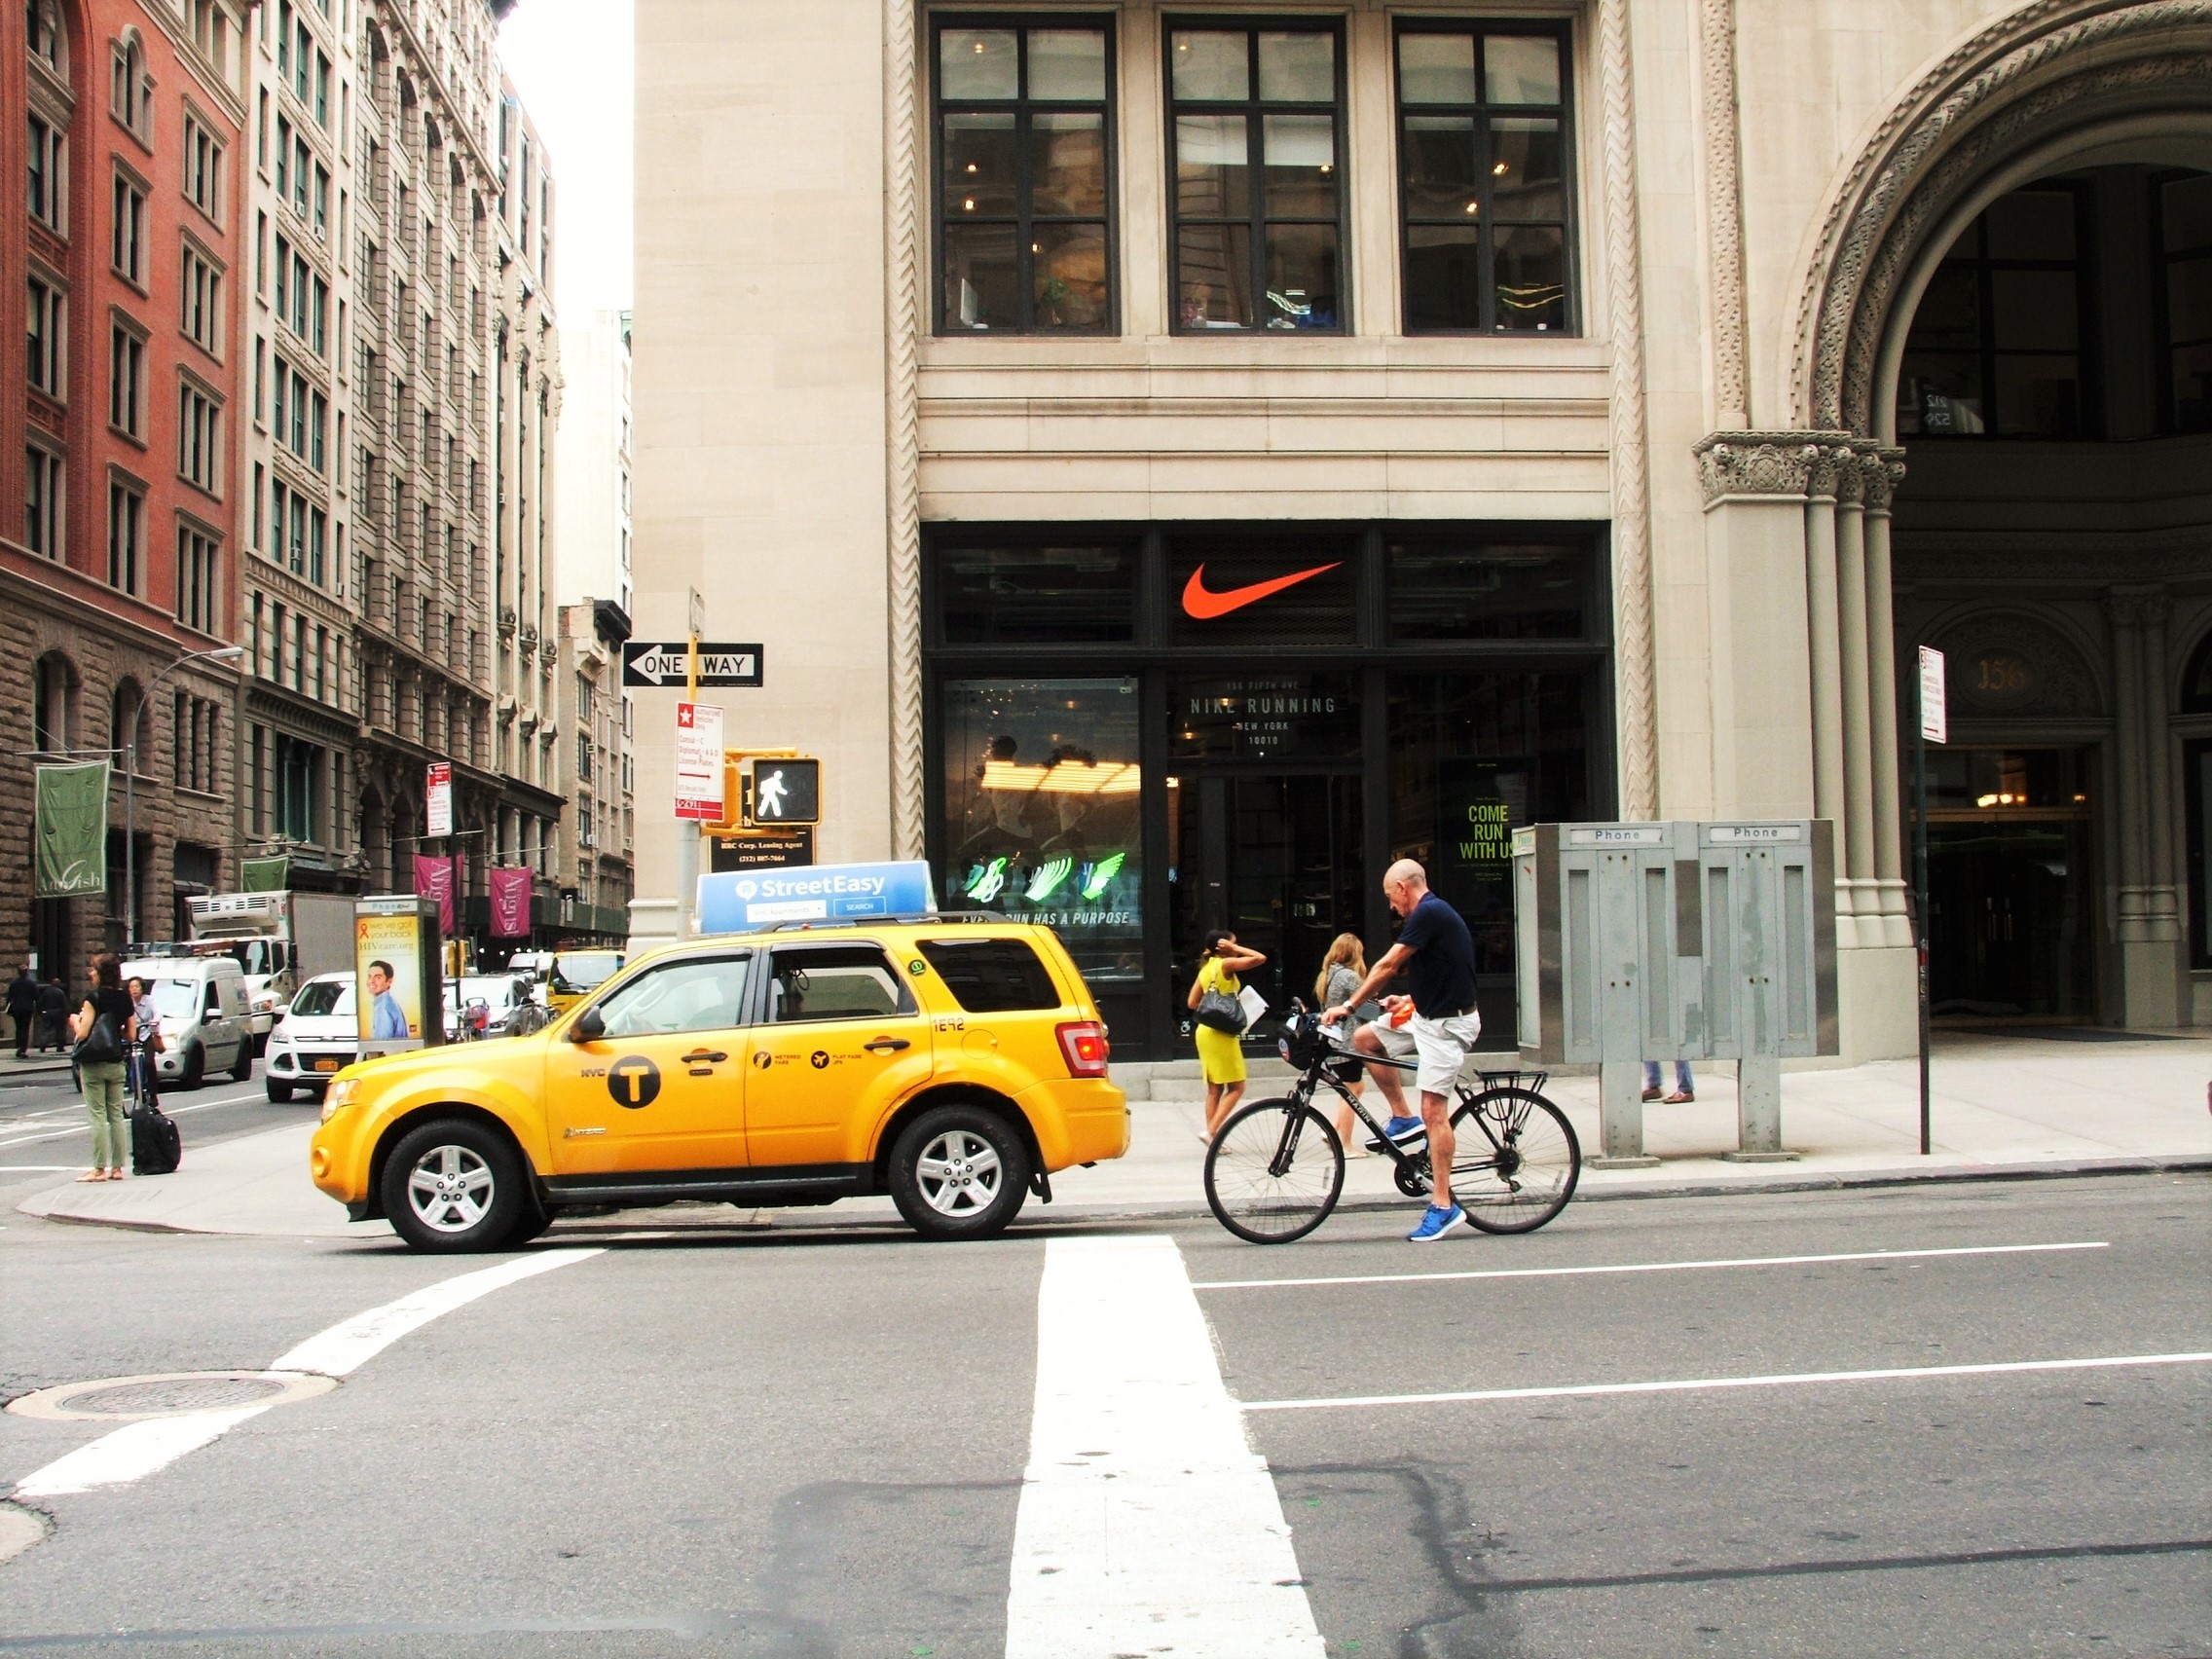 photo; the Nike store on 5th Avenue